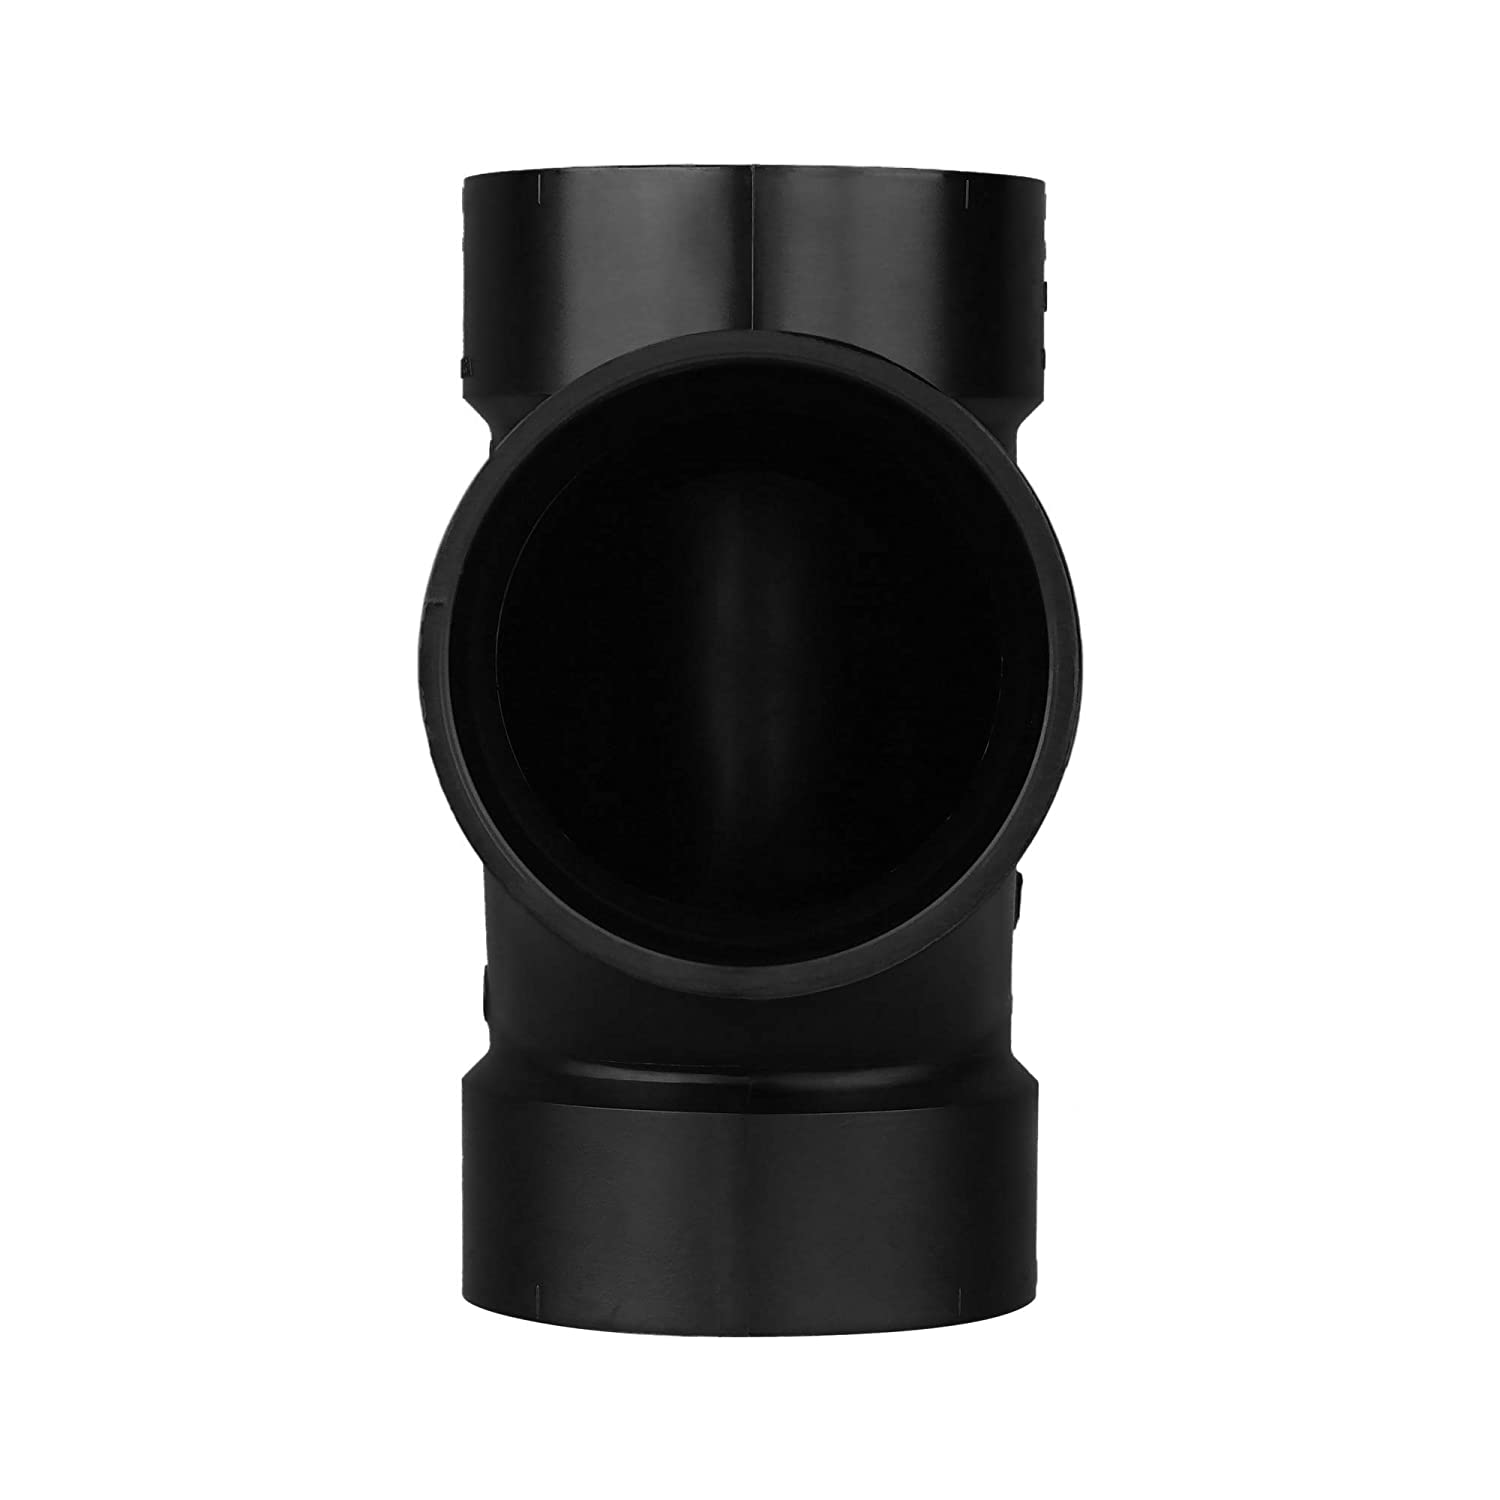 Charlotte Pipe 4 DWV Sanitary Tee All Hub ABS DWV Single Unit Drain, Waste and Vent Schedule 40